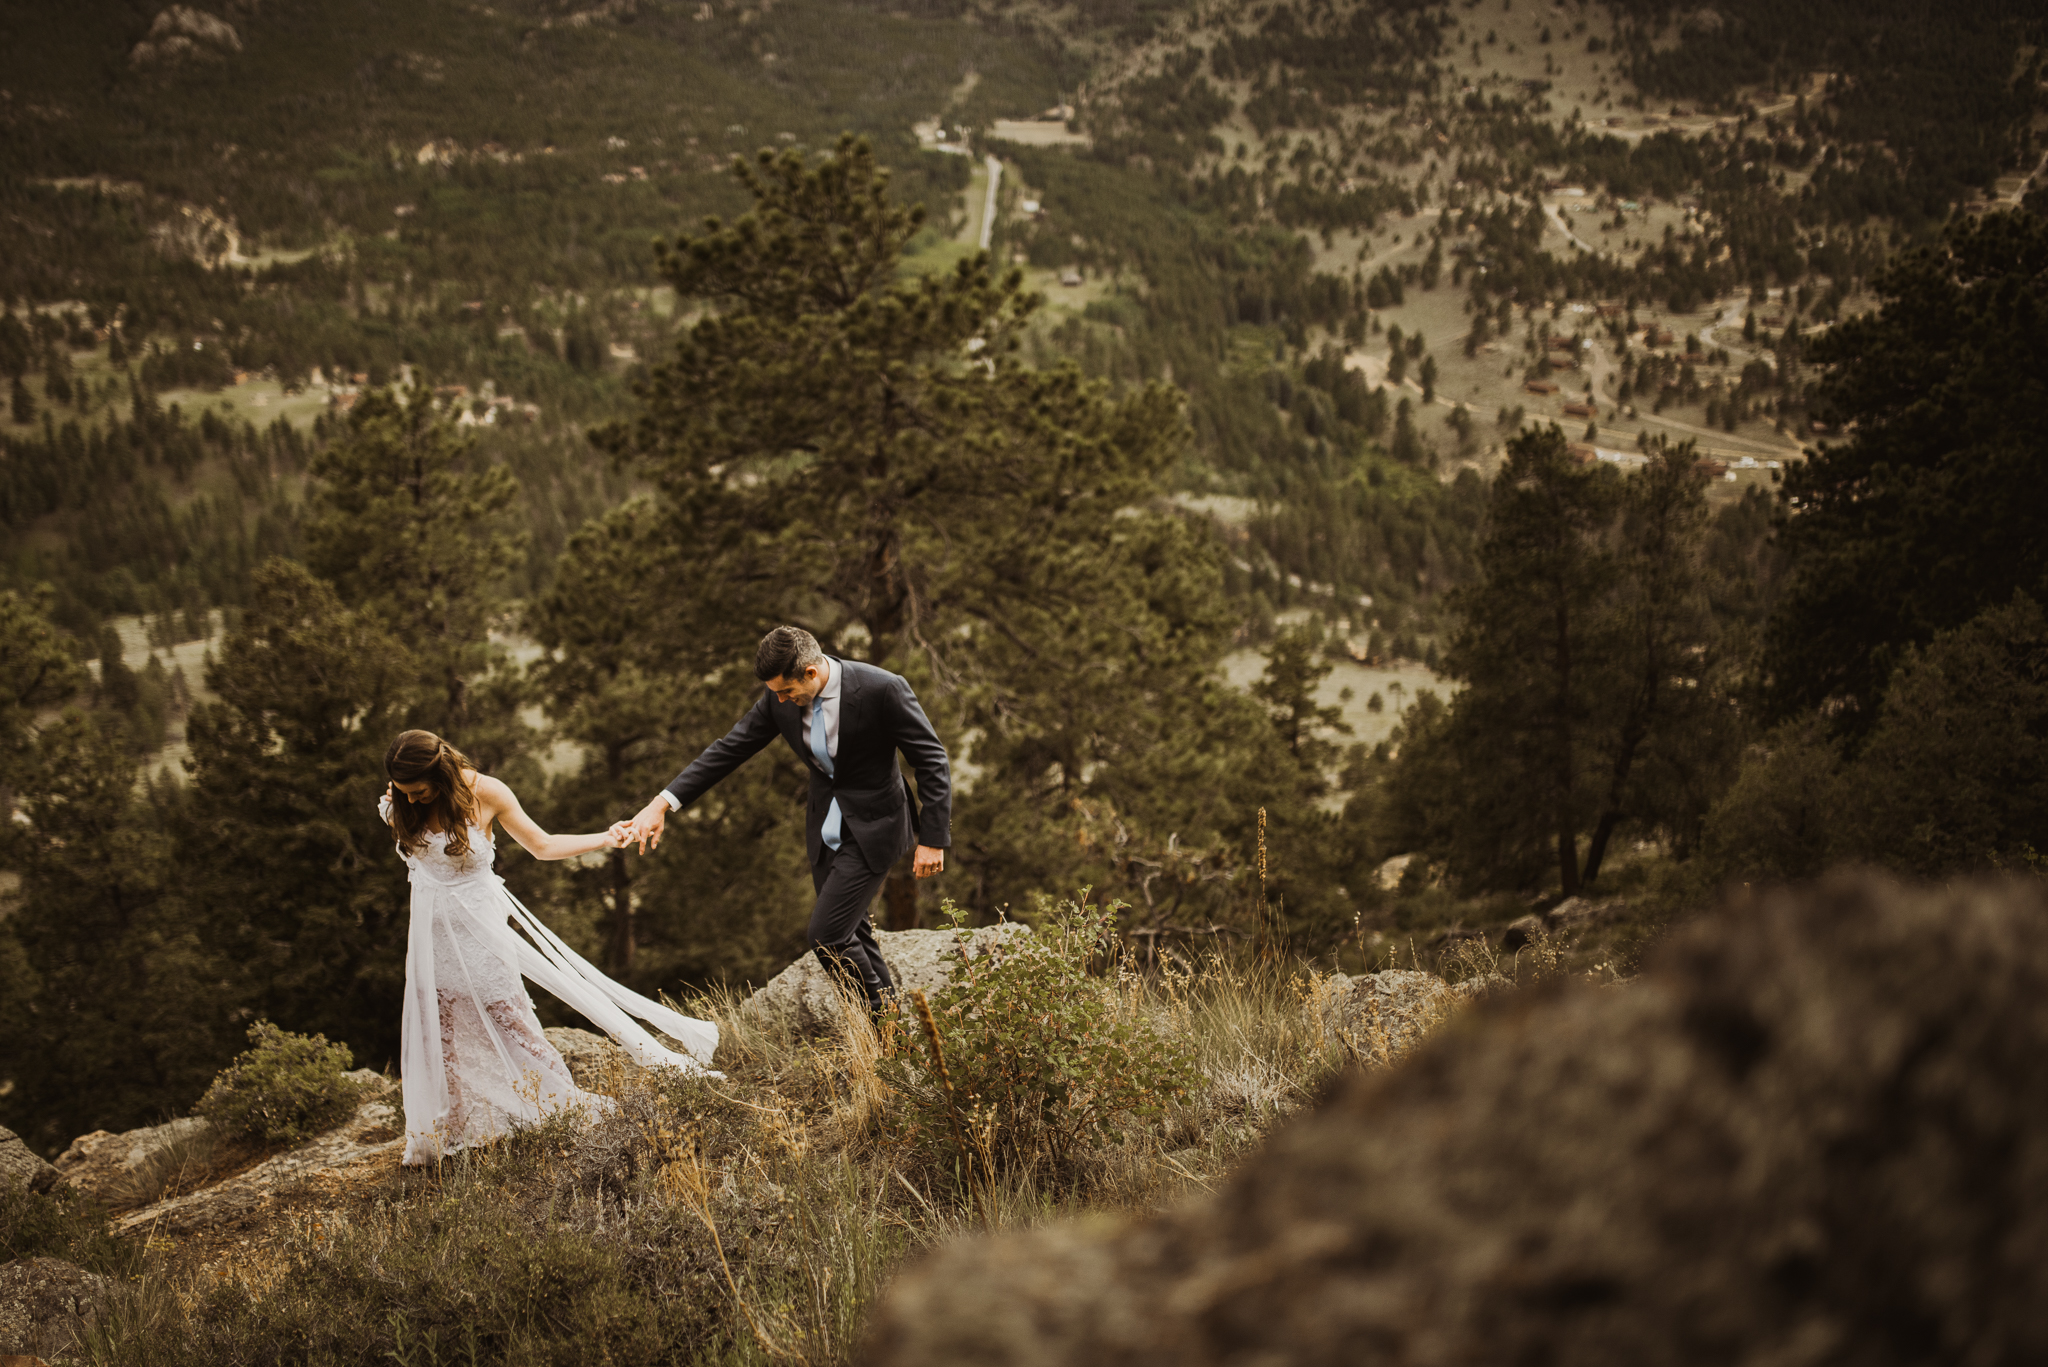 ©Isaiah + Taylor Photography - Estes National Park Adventure Elopement, Colorado Rockies-110.jpg